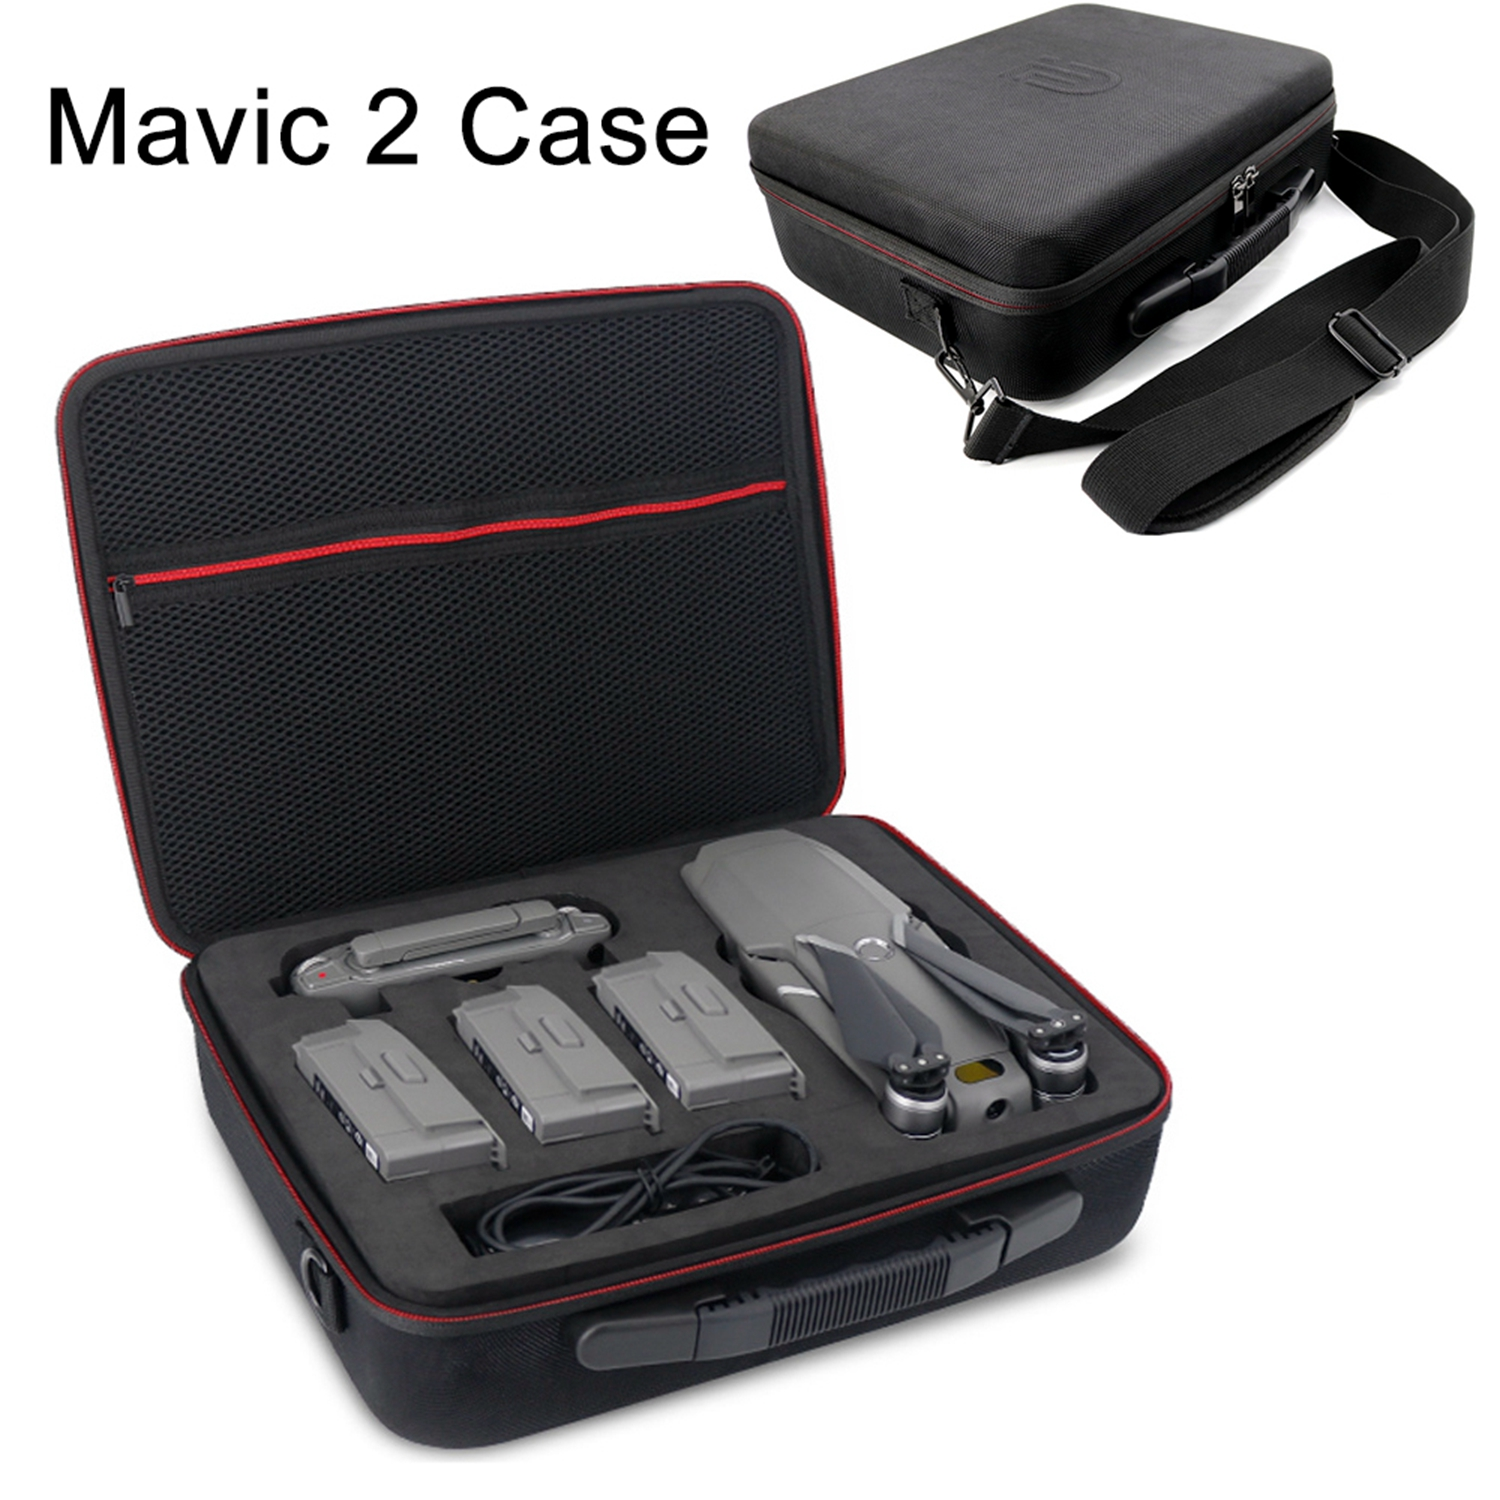 DJI Mavic 2 Drone Shoulder Bag Travel Portable Storage Box Suitcase Carrying Case for MAVIC 2 Pro Zoom Battery Controller Parts